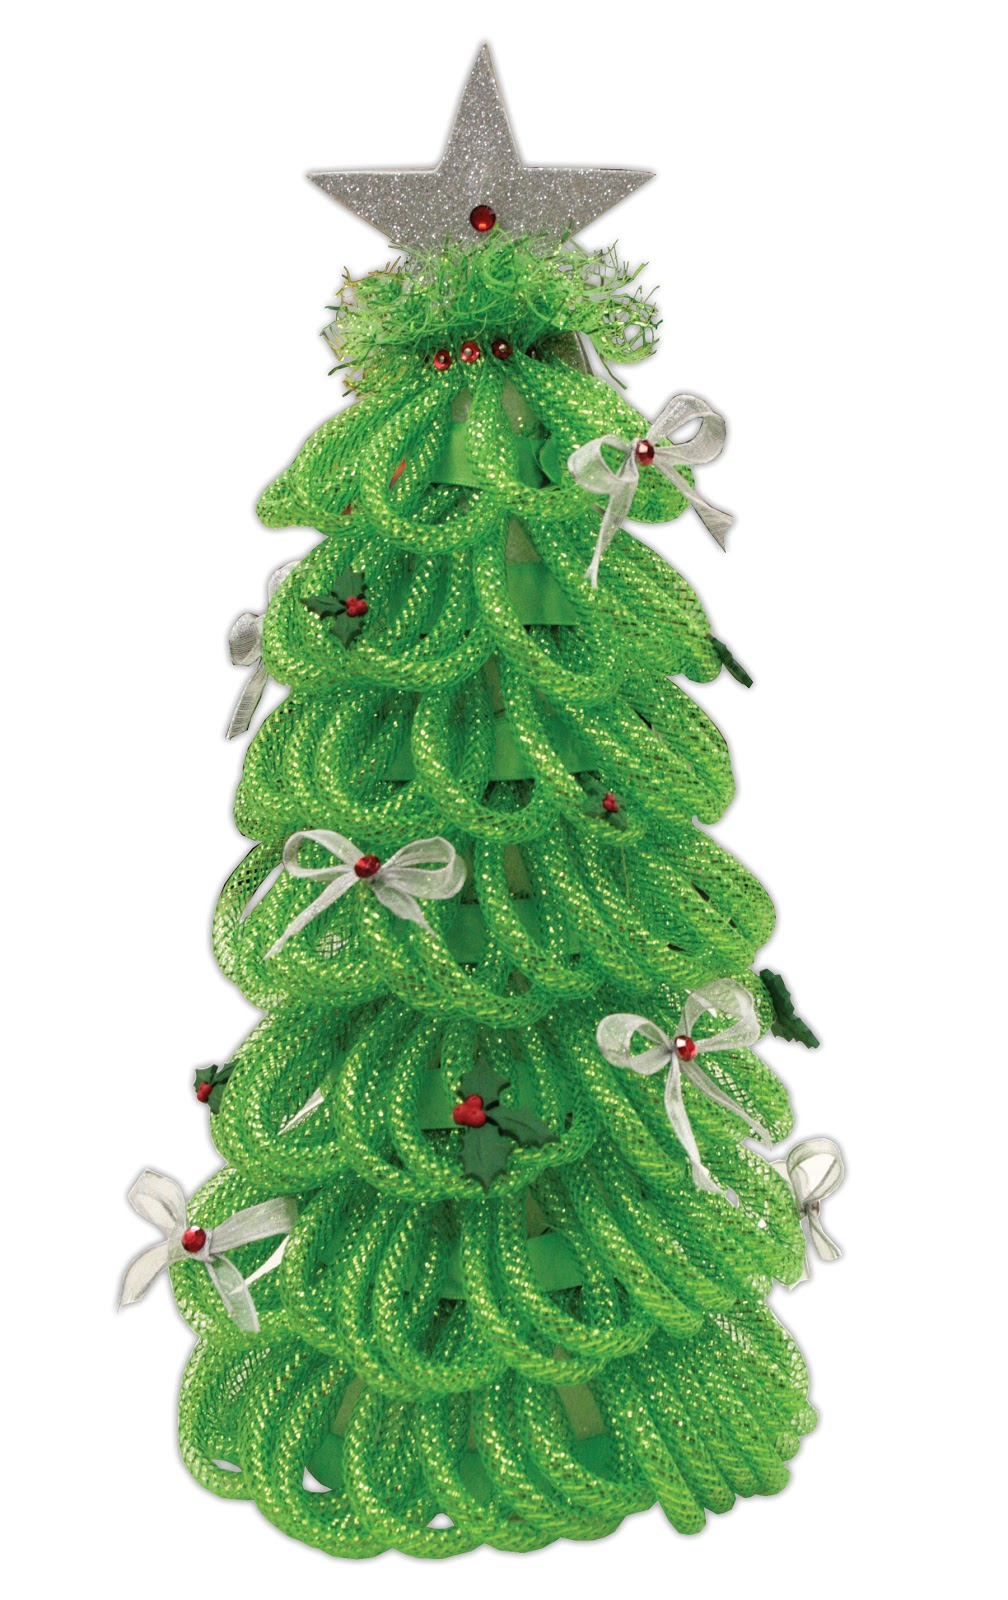 How To Decorate Christmas Tree With Poly Mesh Ribbon : Crafts direct geo deco mesh trees